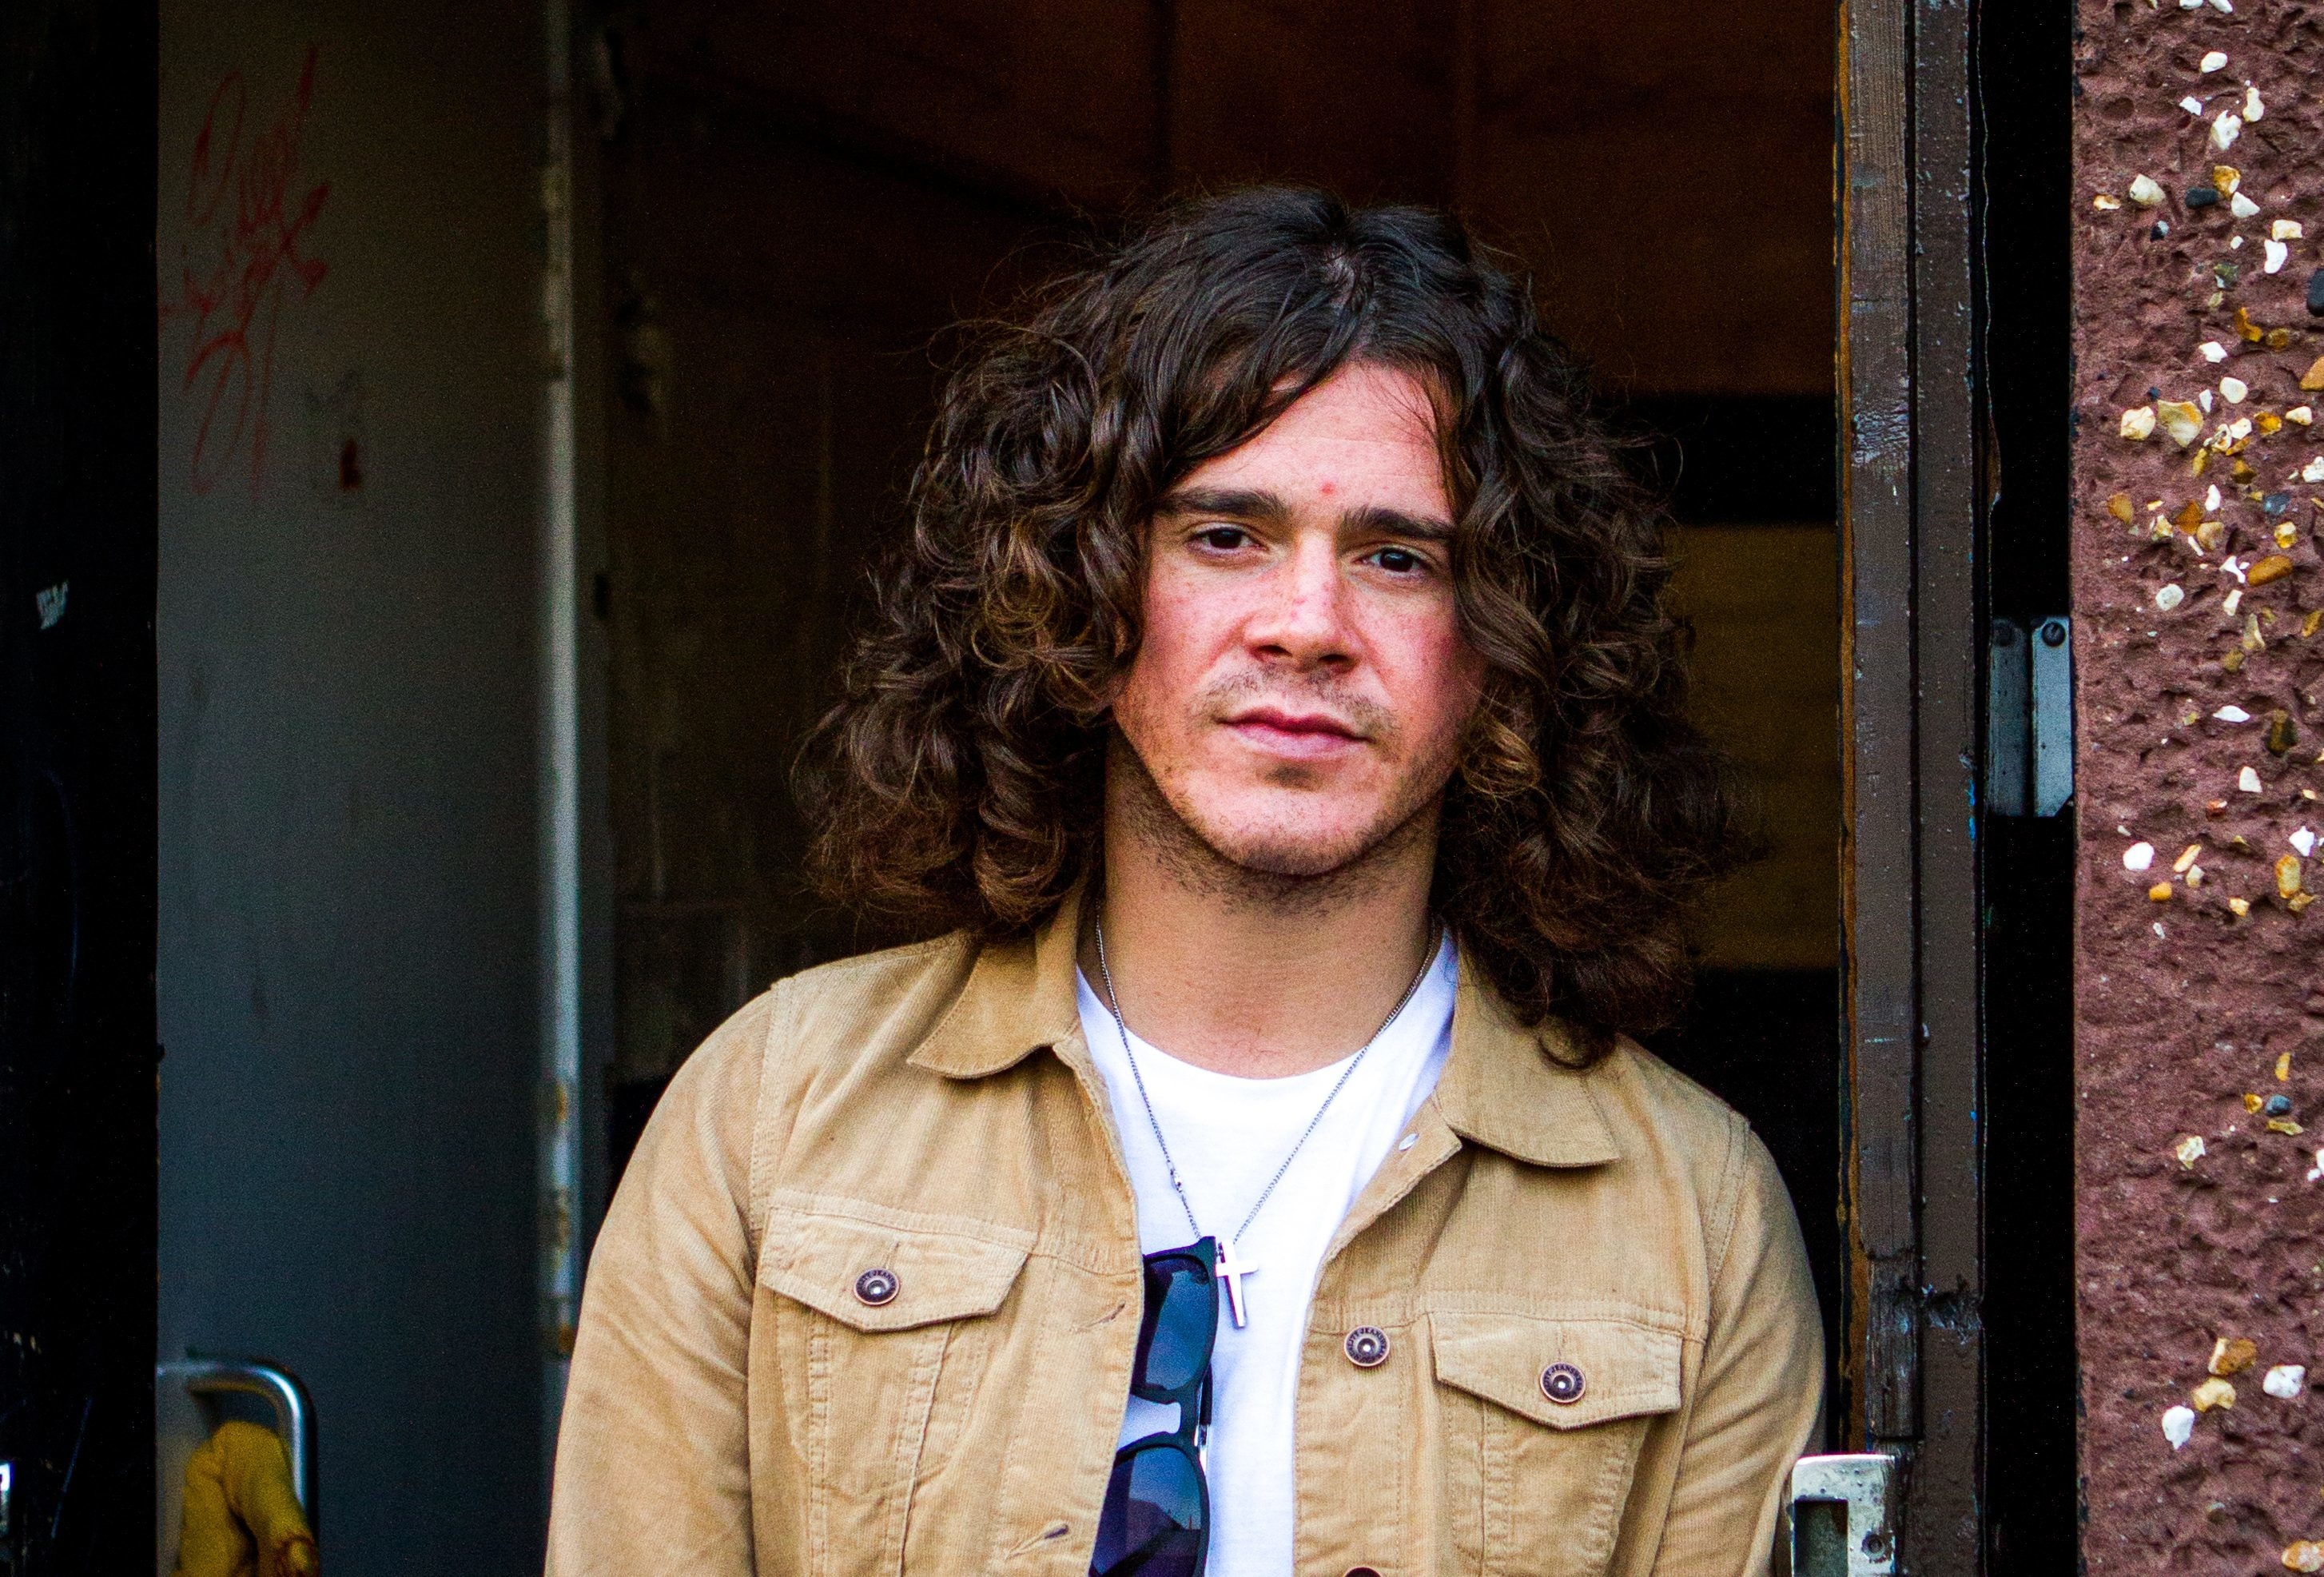 The View's Kyle Falconer strikes out on his own this weekend